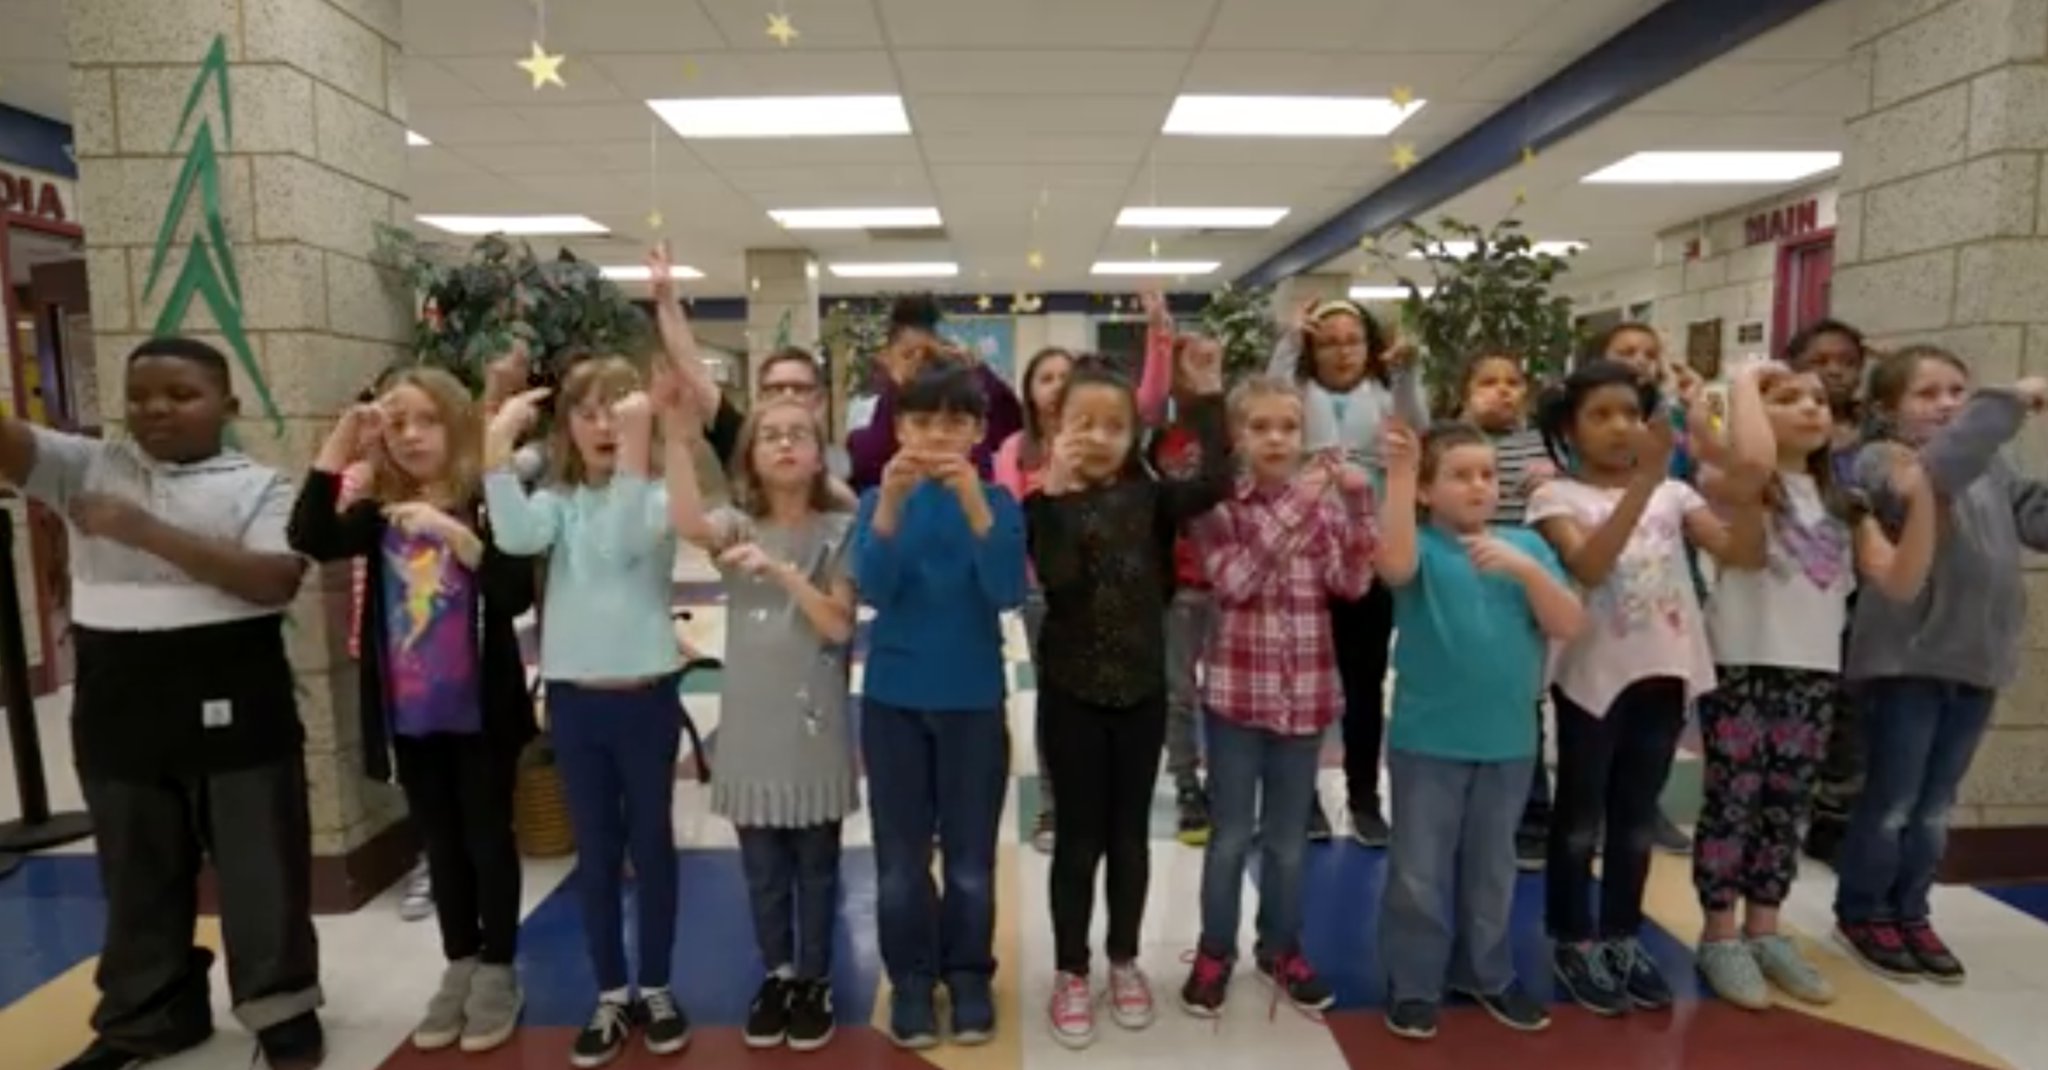 Walker-Winter 3rd graders saying the pledge